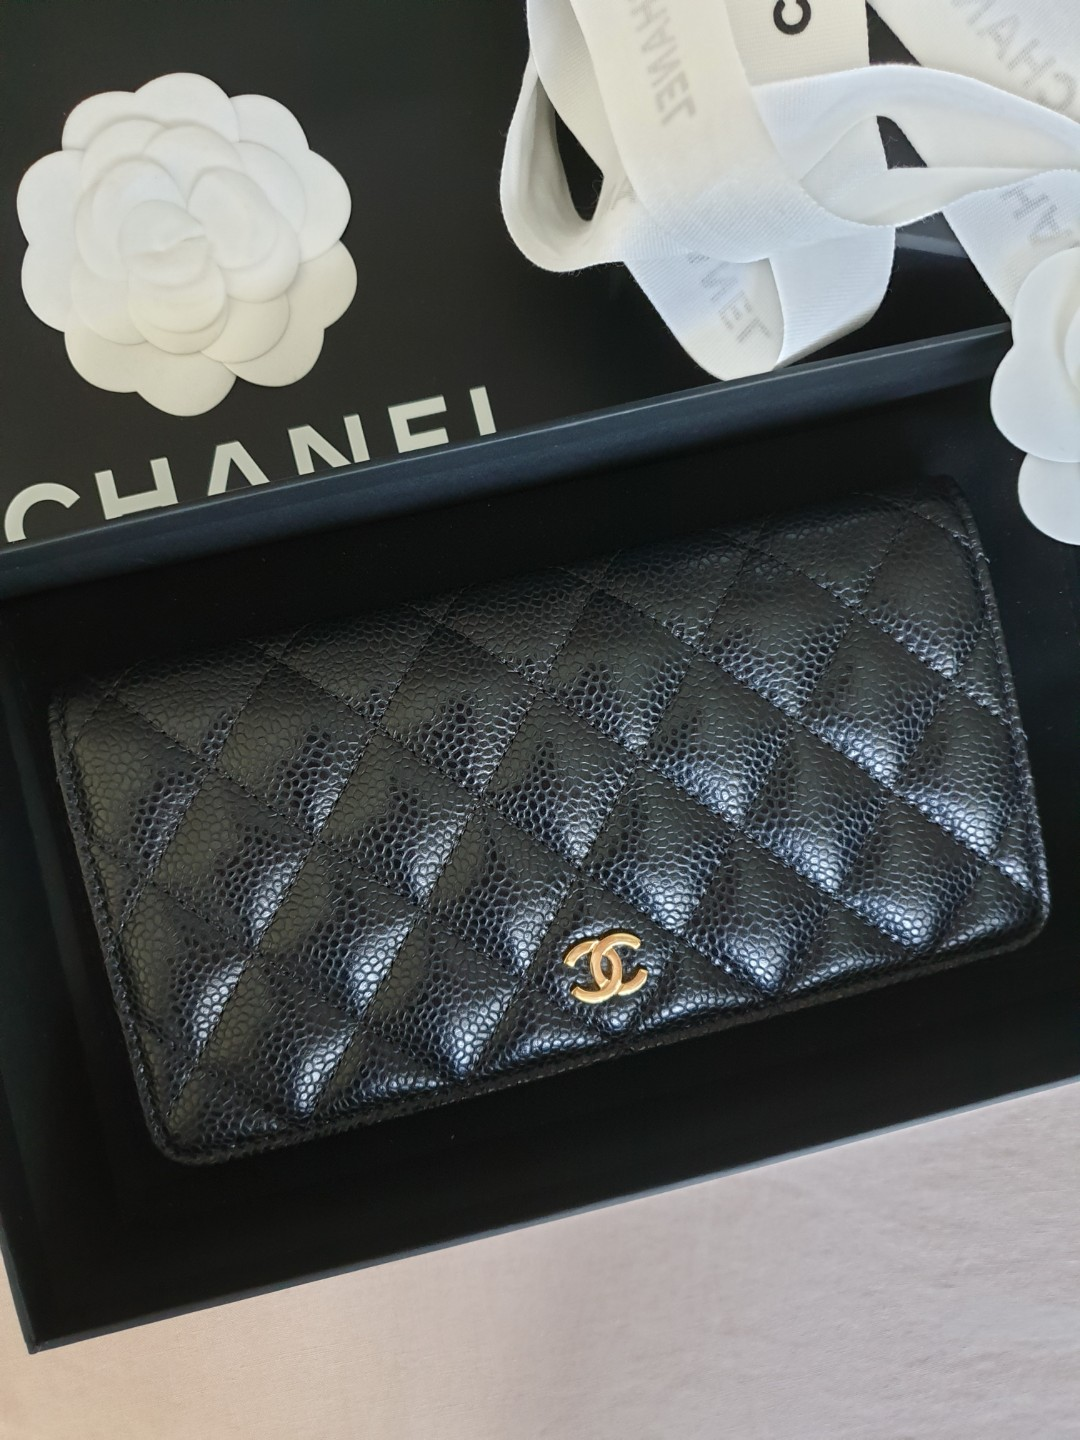 22a3a75b3d9f Chanel Long Wallet, Luxury, Bags & Wallets, Wallets on Carousell